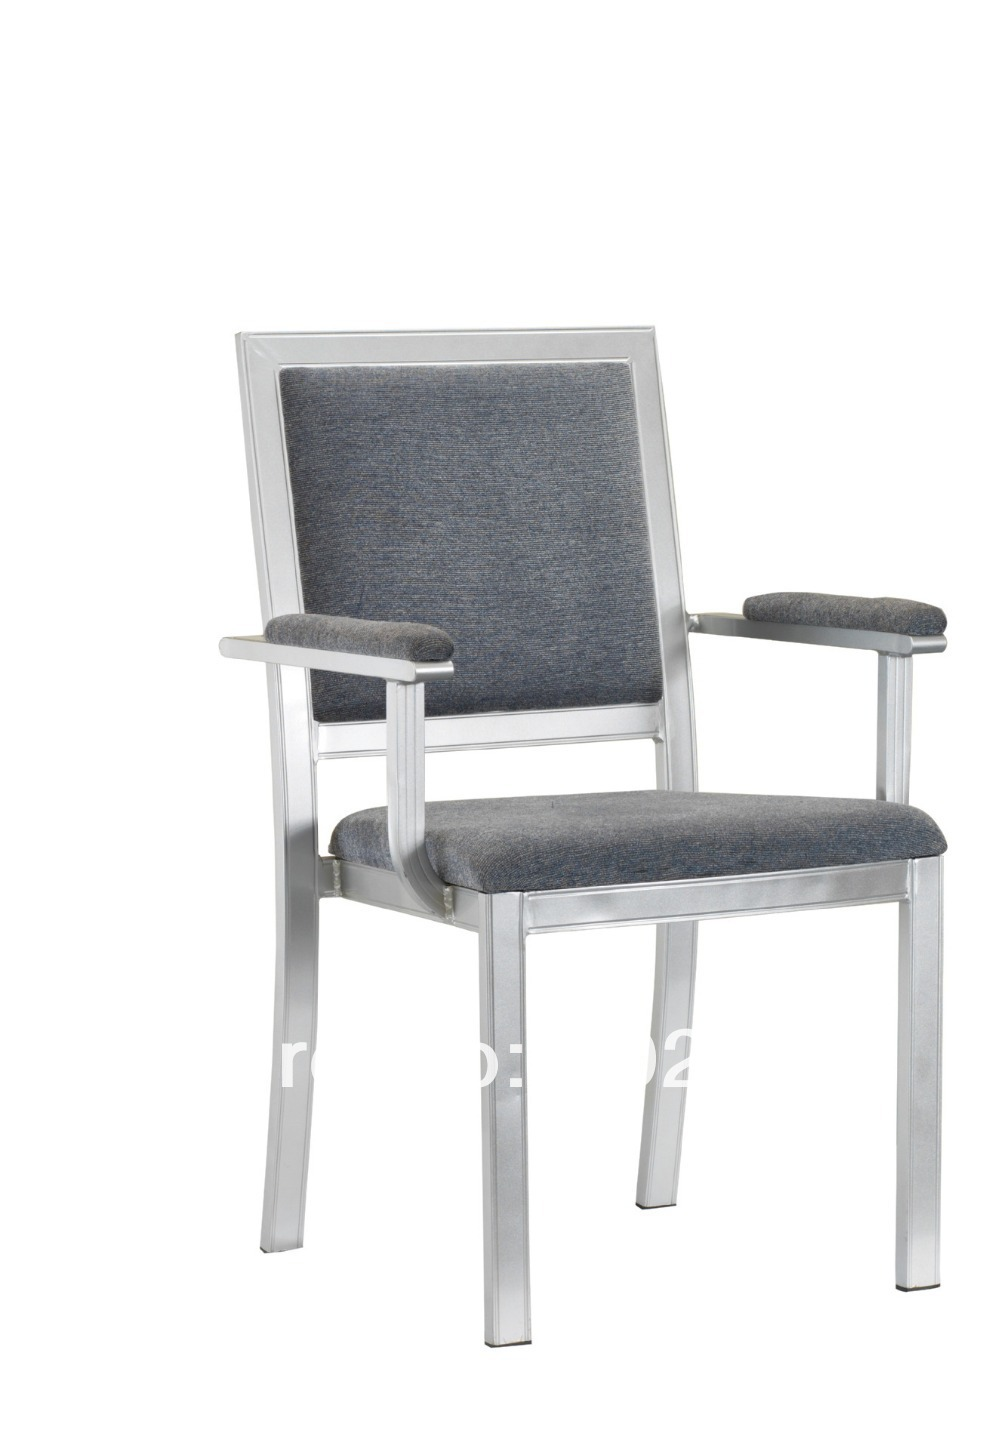 Stackable wood grain Aluminum banquet armchair,heavy duty fabric with high rub resistance,comfortable дырокол deli heavy duty e0130